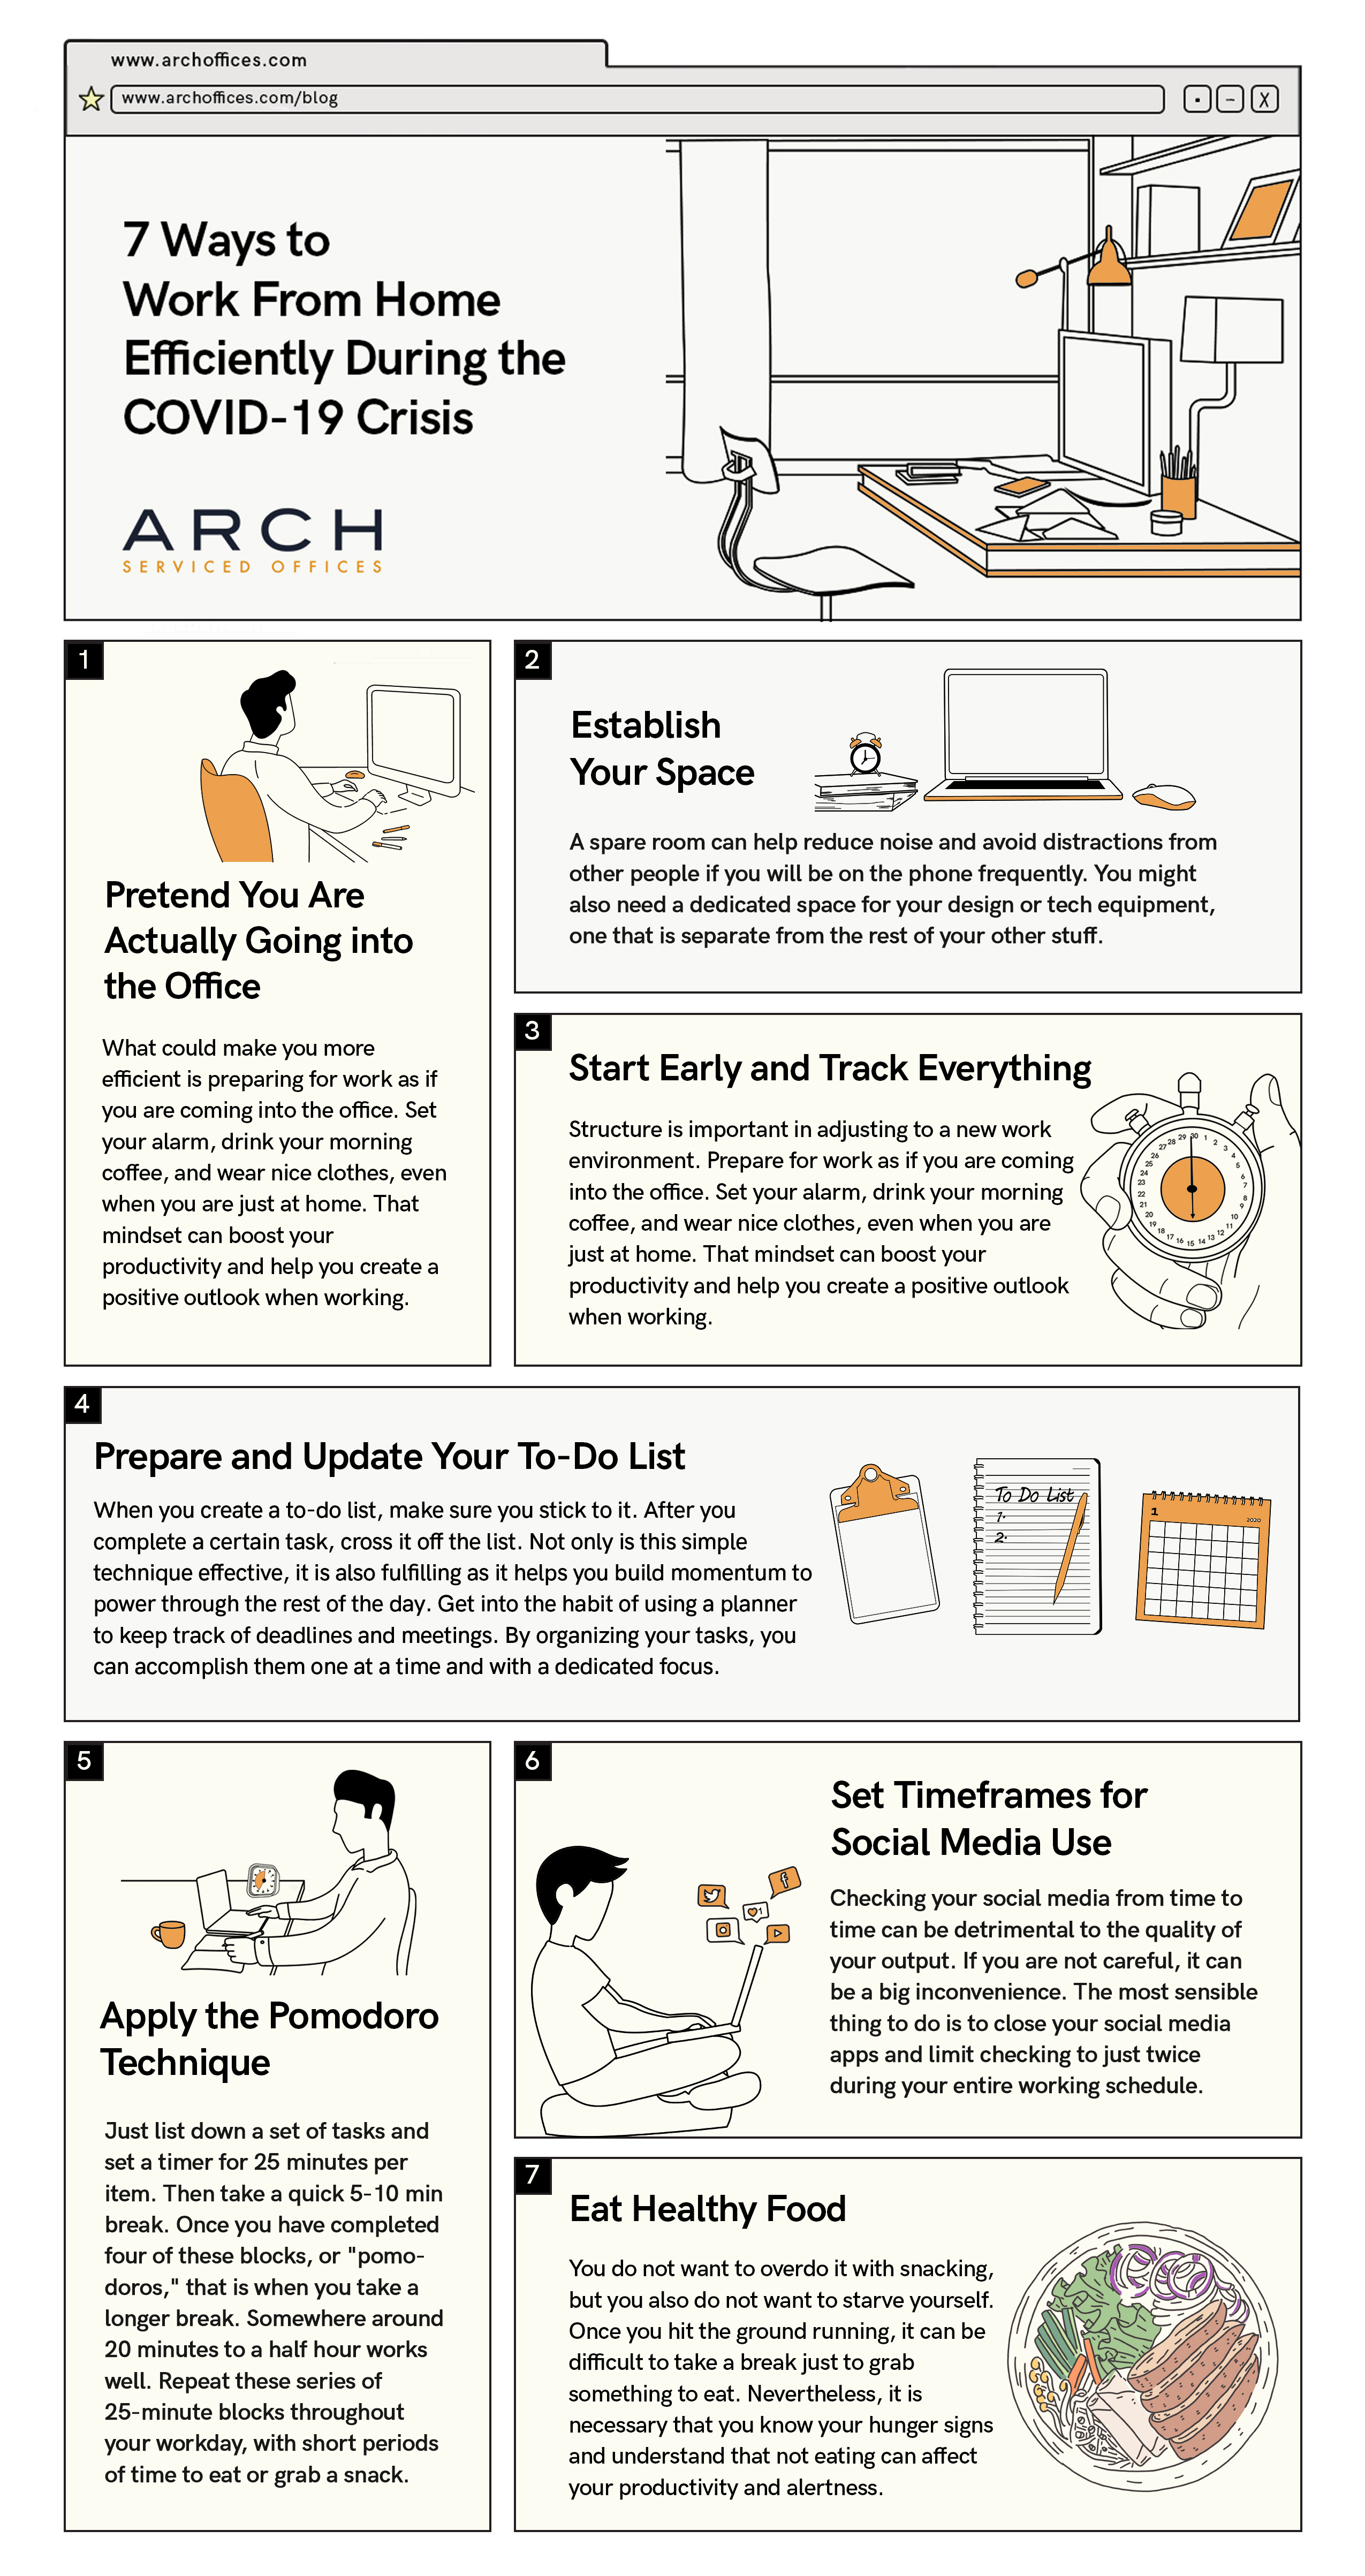 ARCH Ways to Work From Home Infographic - ARCH Offices - Blog